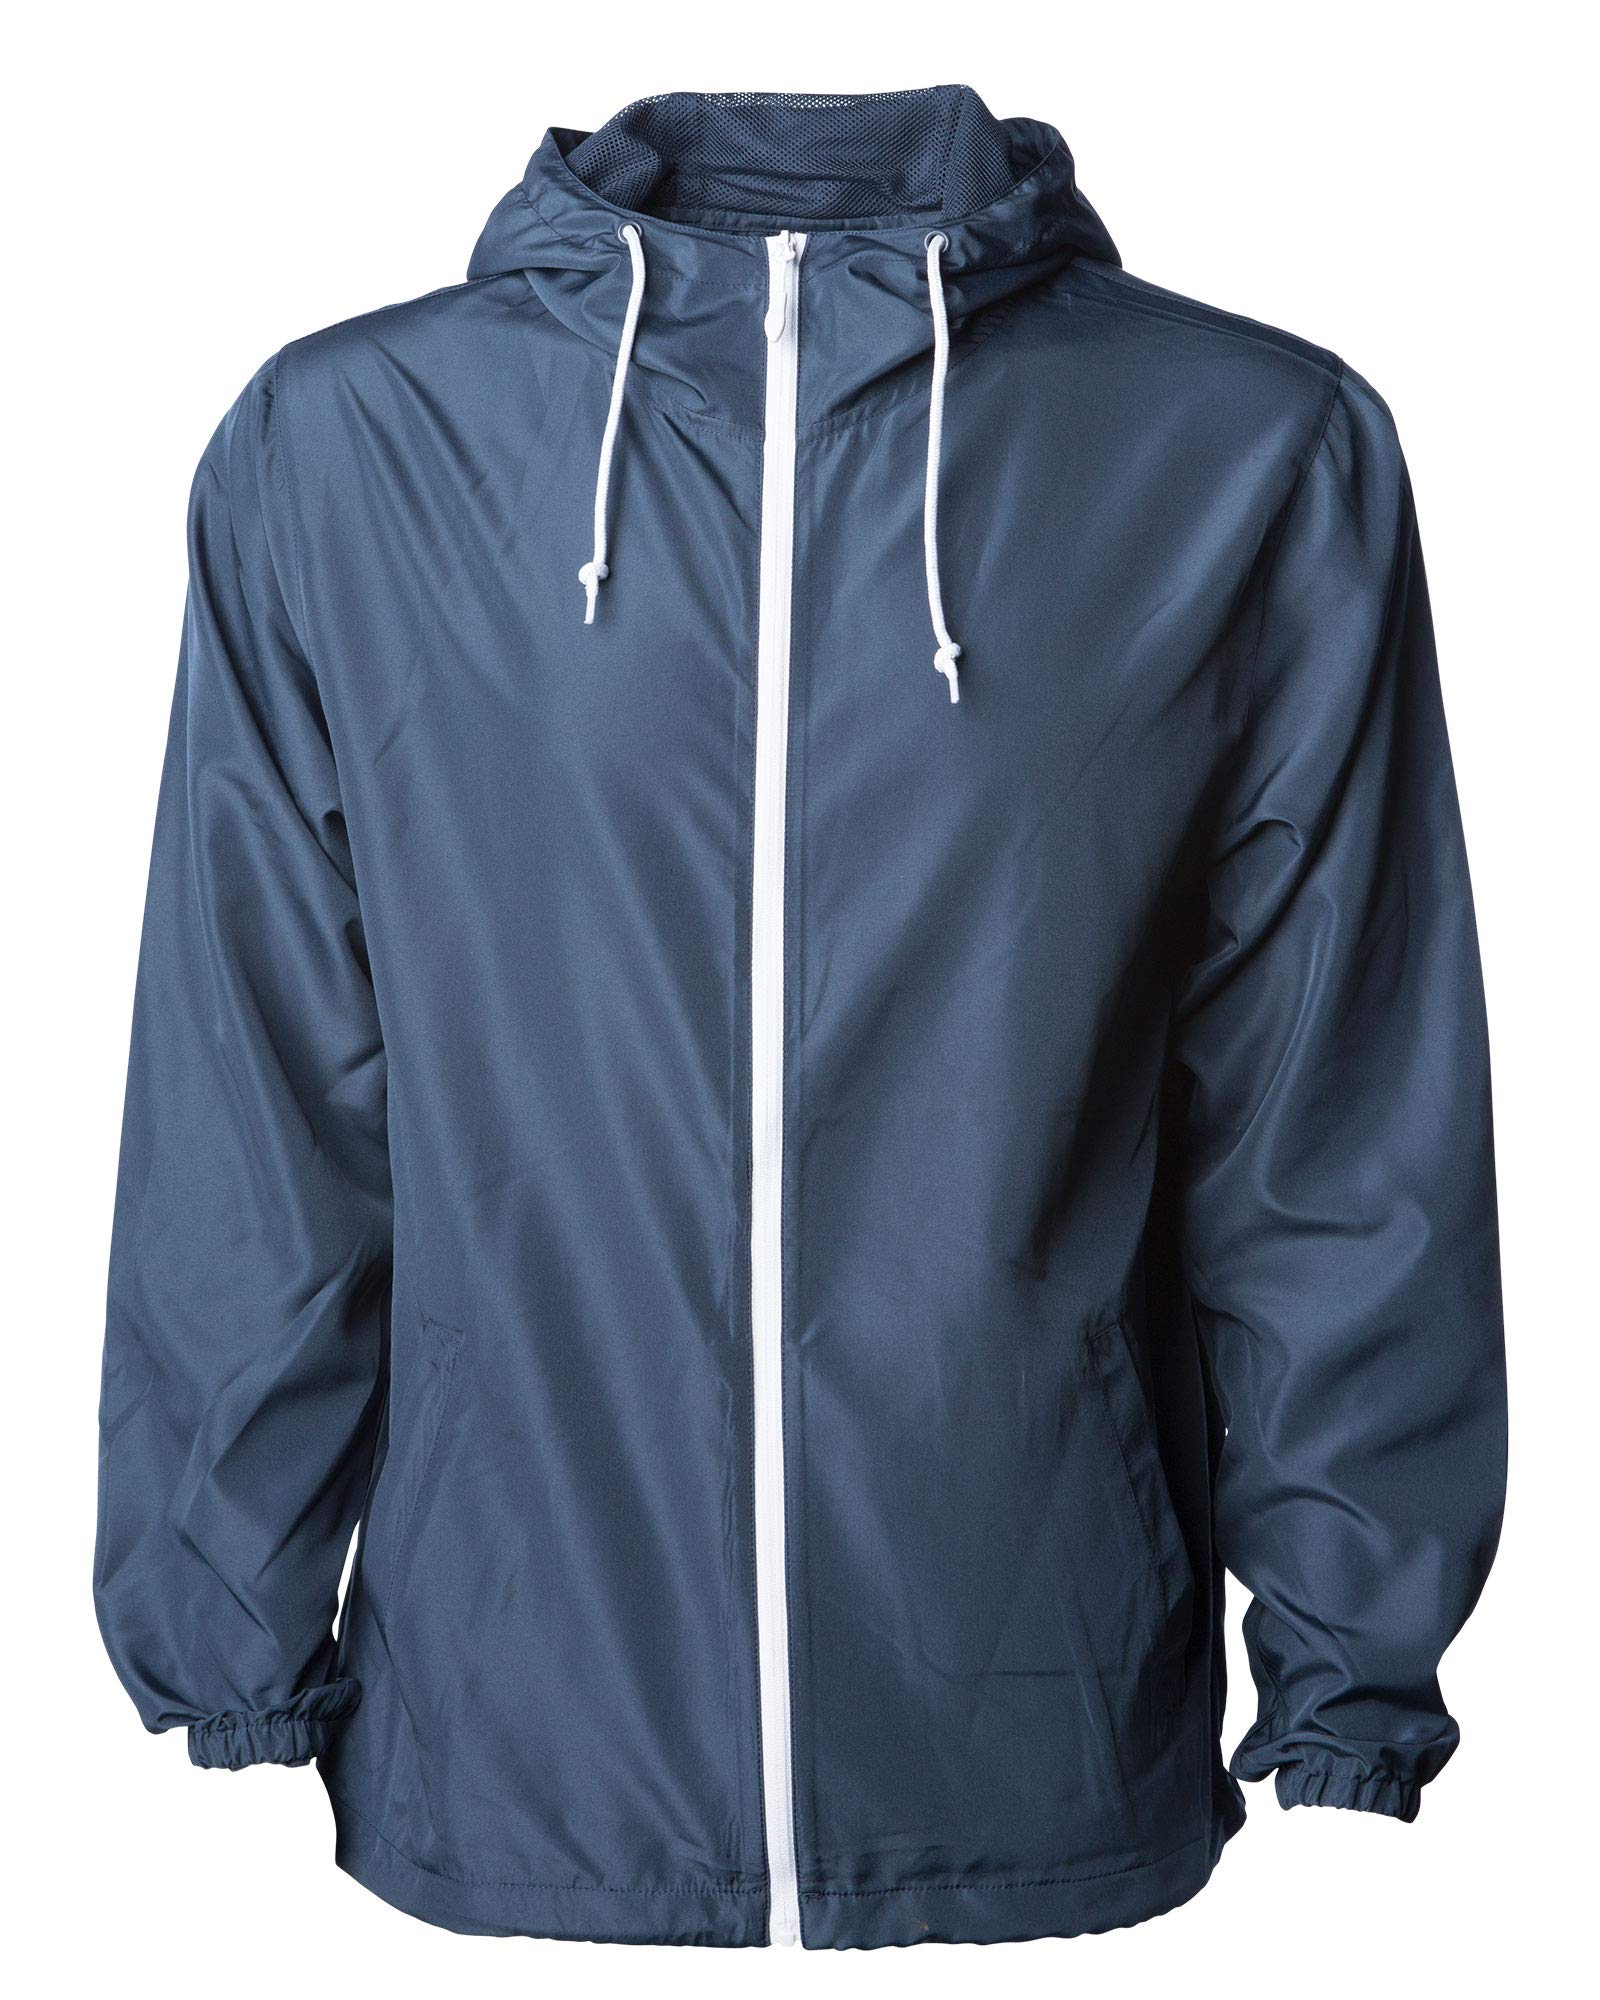 Global Men's Hooded Lightweight Windbreaker Winter Jacket Water Resistant Shell (Navy/White, X-Large)